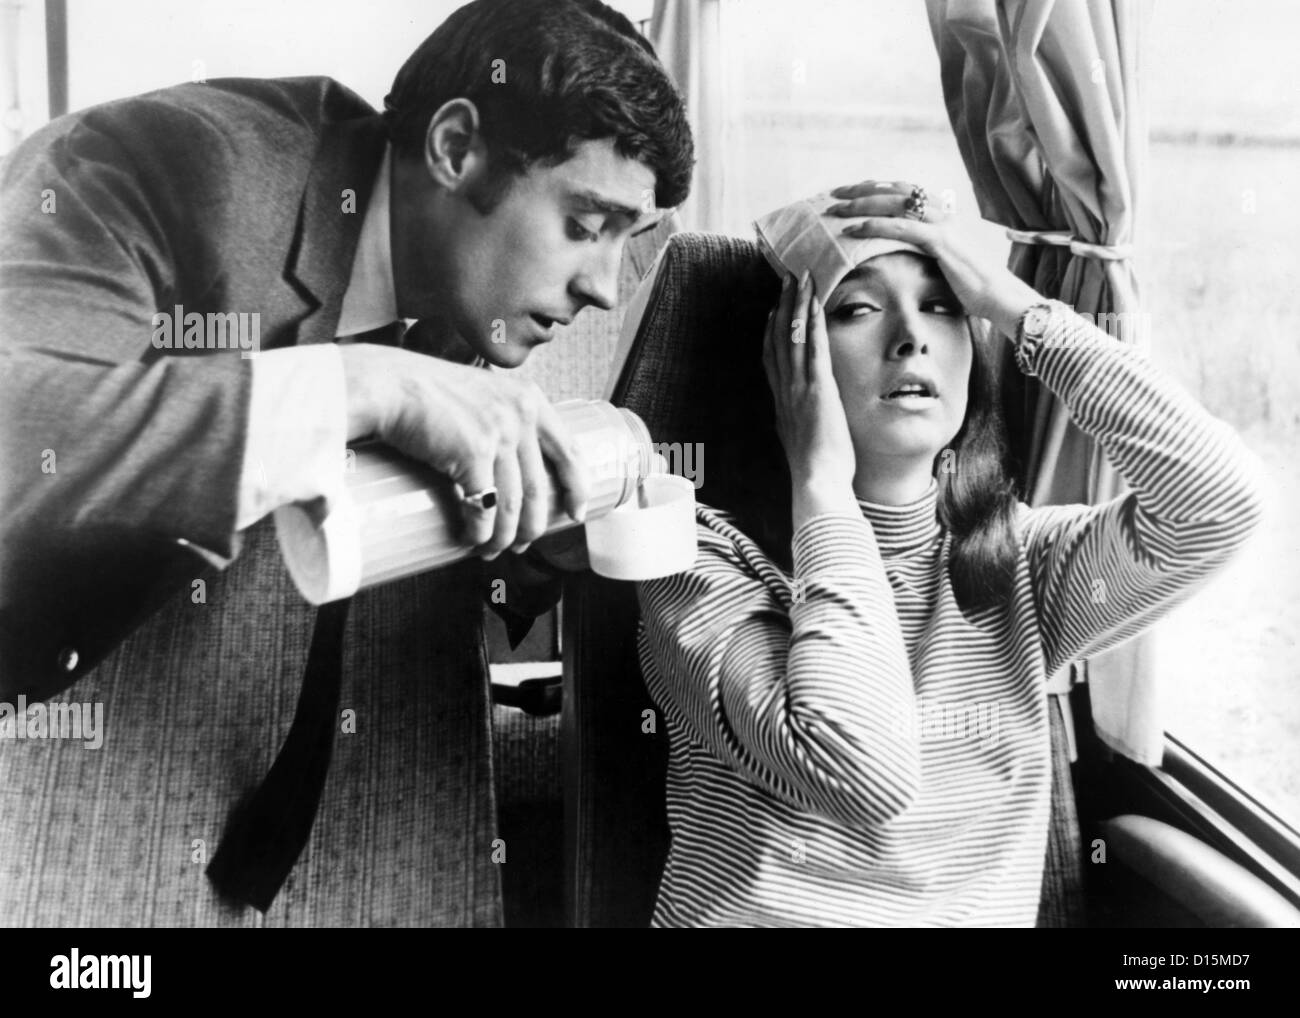 IF ITS TUESDAY IT MUST BE BELGIUM (1969) IAN MCSHANE, SUZANNE PLESHETTE, MEL STUART (DIR) ITTB 003 MOVIESTORE COLLECTION Stock Photo